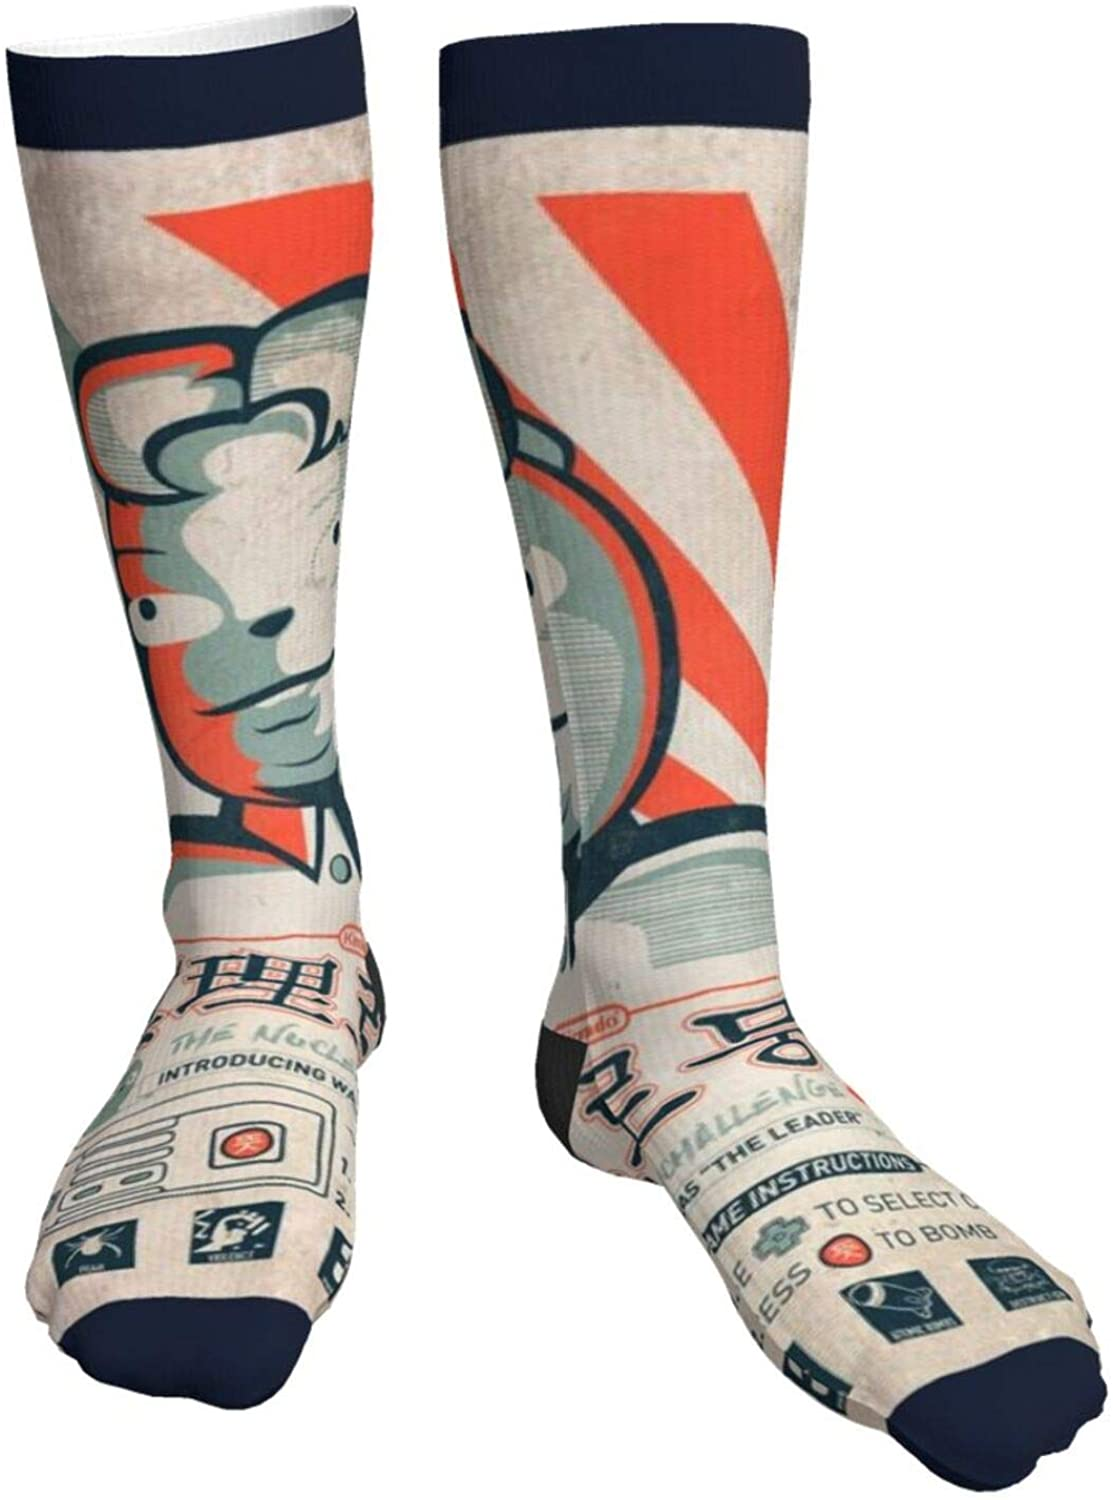 Mens Heavy Thick Socks The Waldo Moment Kim Jong Un Soft Comfort Crew Socks Casual Athletic 20in Long The-Calf Sock